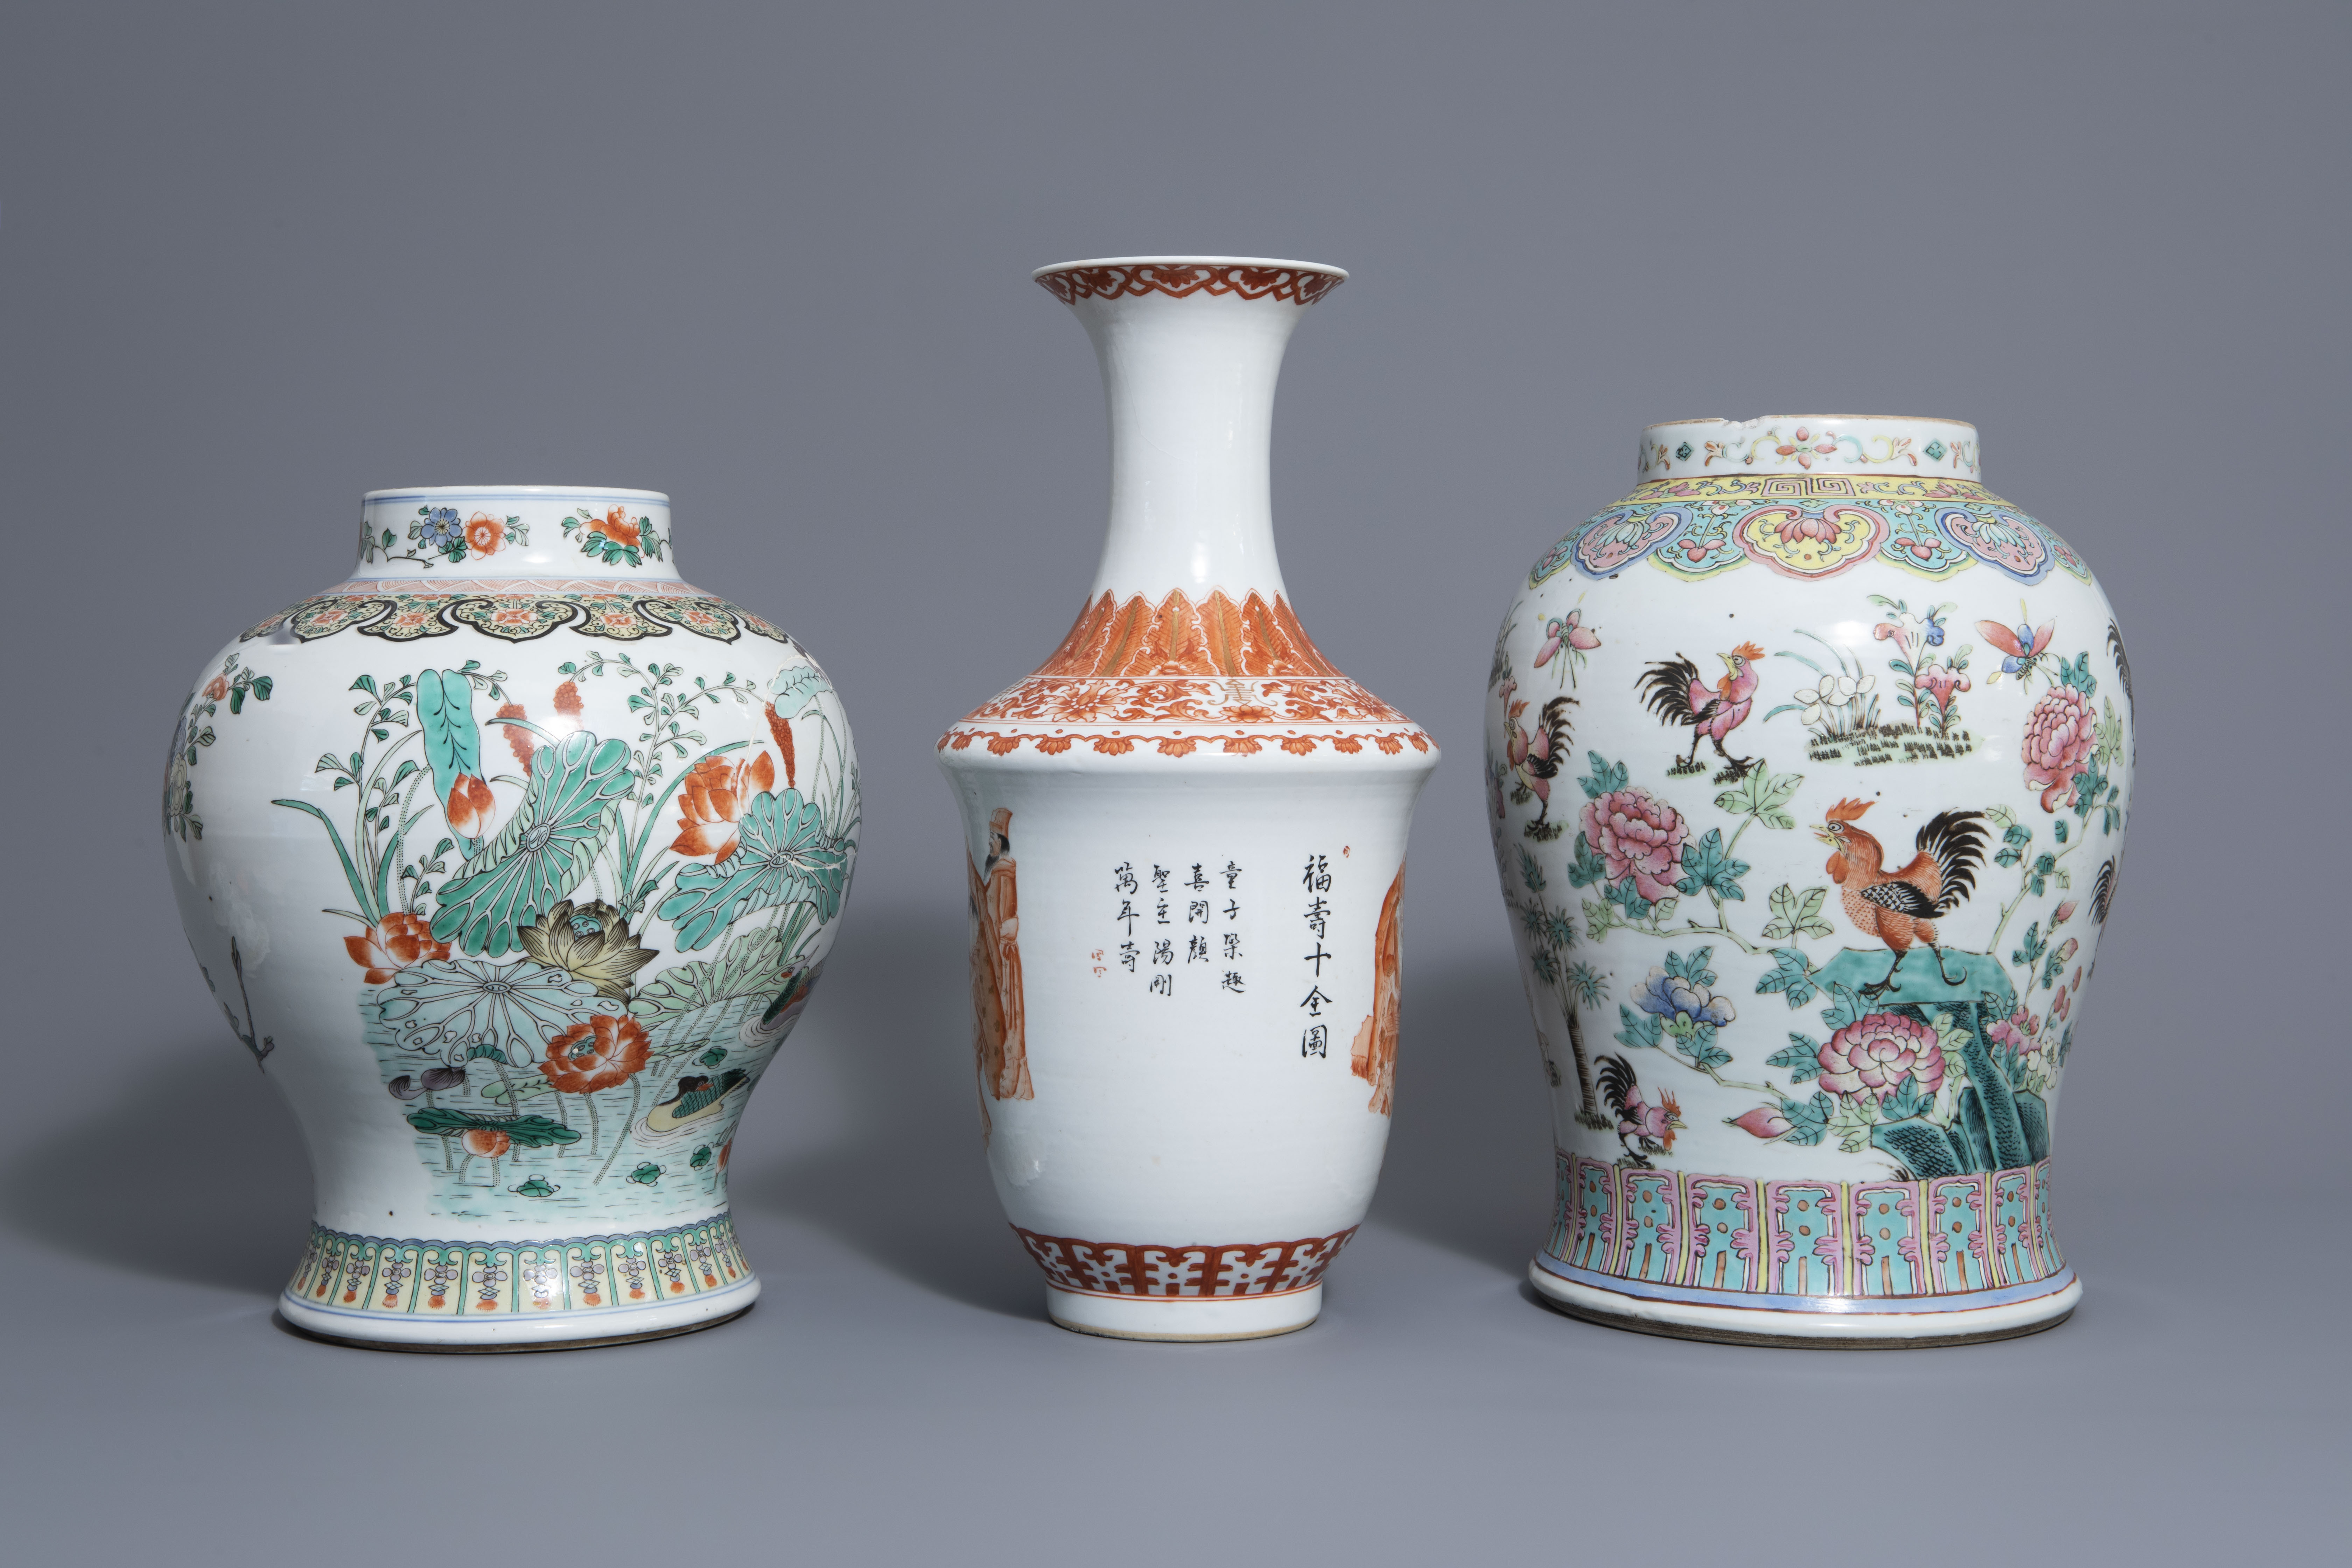 Three Chinese famille rose, verte and iron red vases with different designs, 19th/20th C. - Image 4 of 7